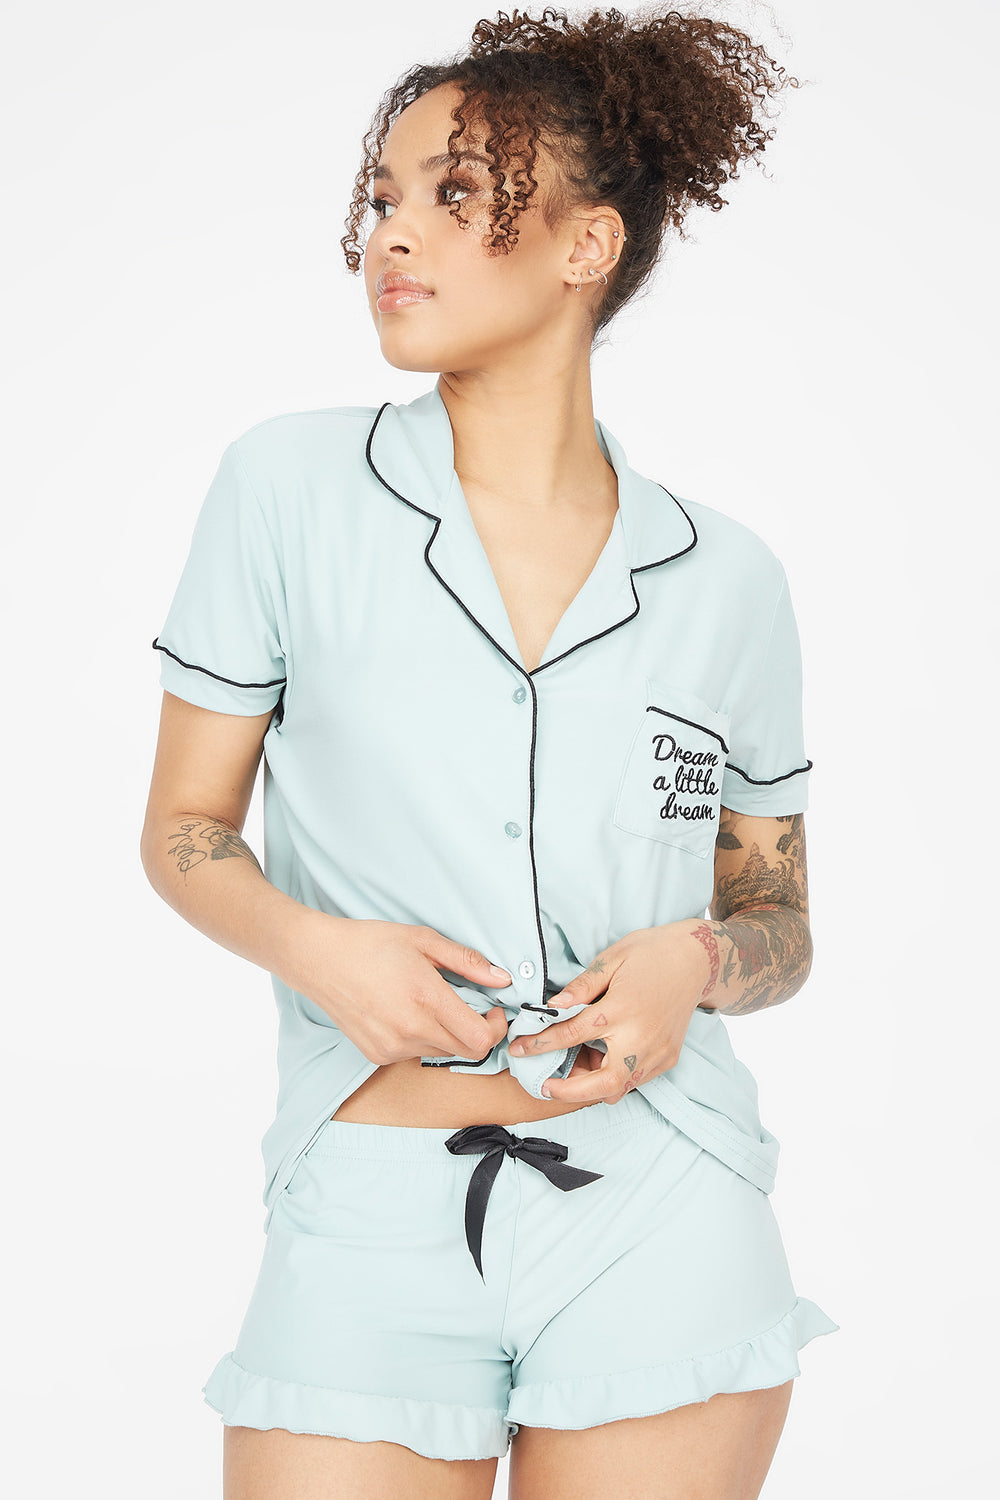 Soft 2-Piece Button-Up Embroidered Dream Short Sleeve Top With Shorts Pajama Set Aqua